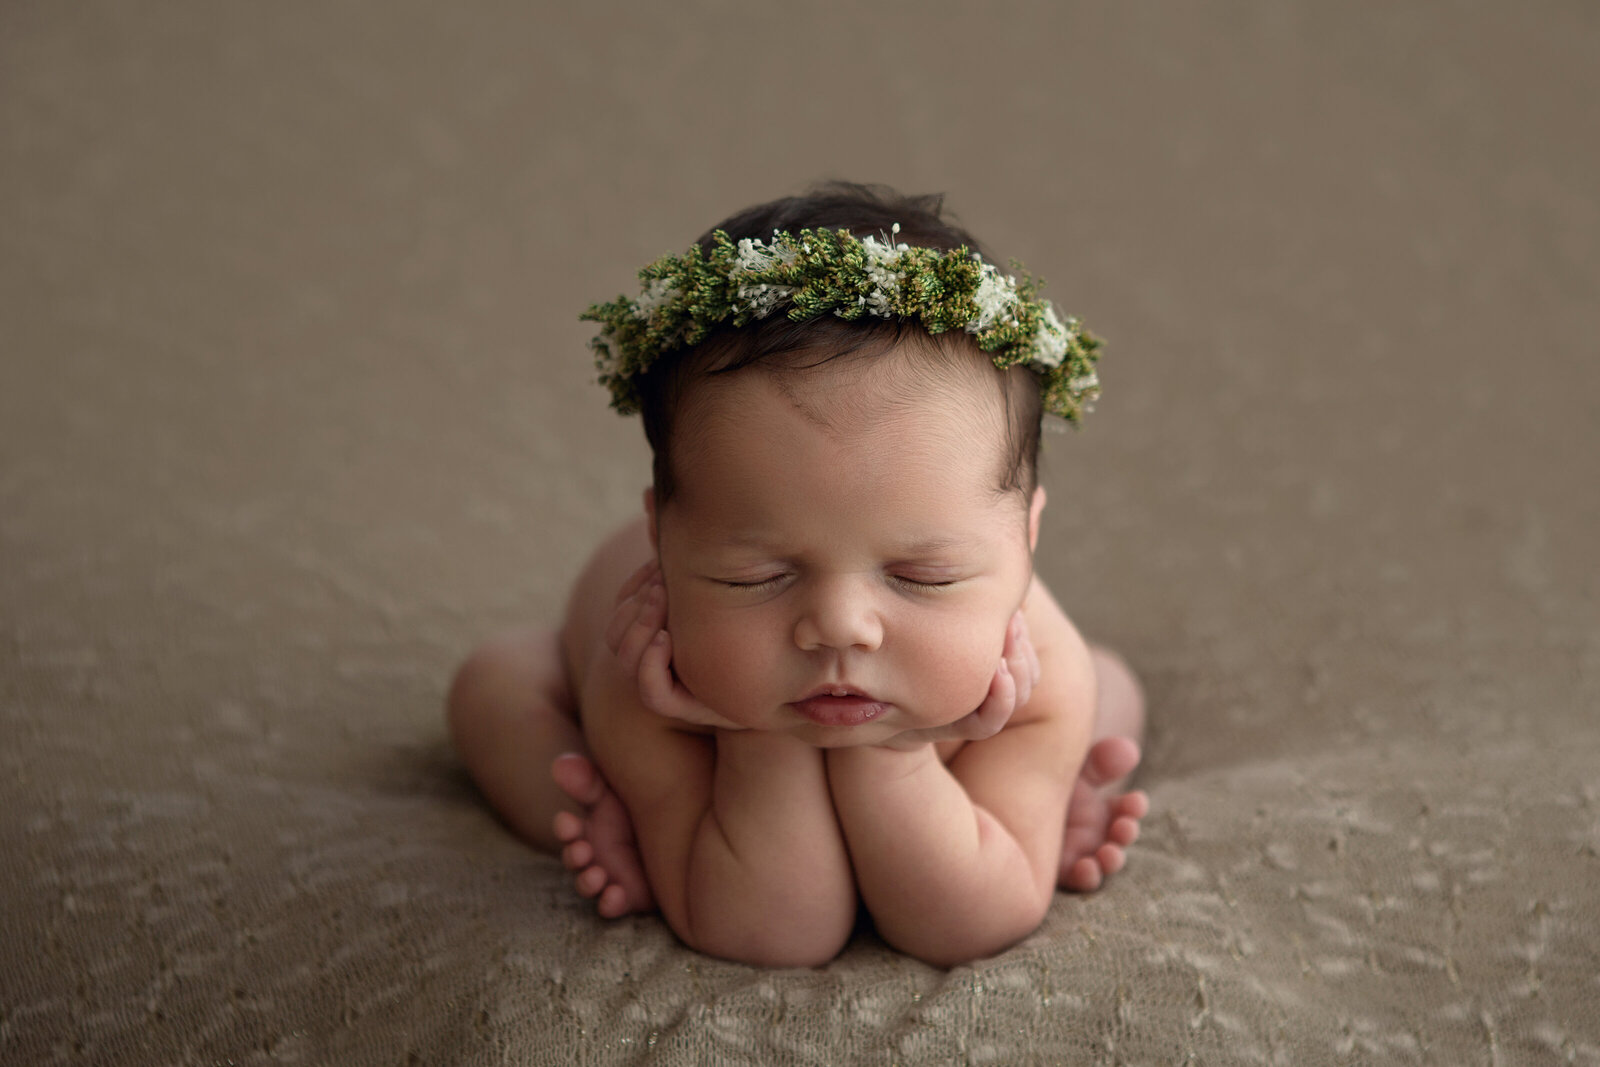 Professional studio portrait of newborn baby posed asleep, brown backdrop